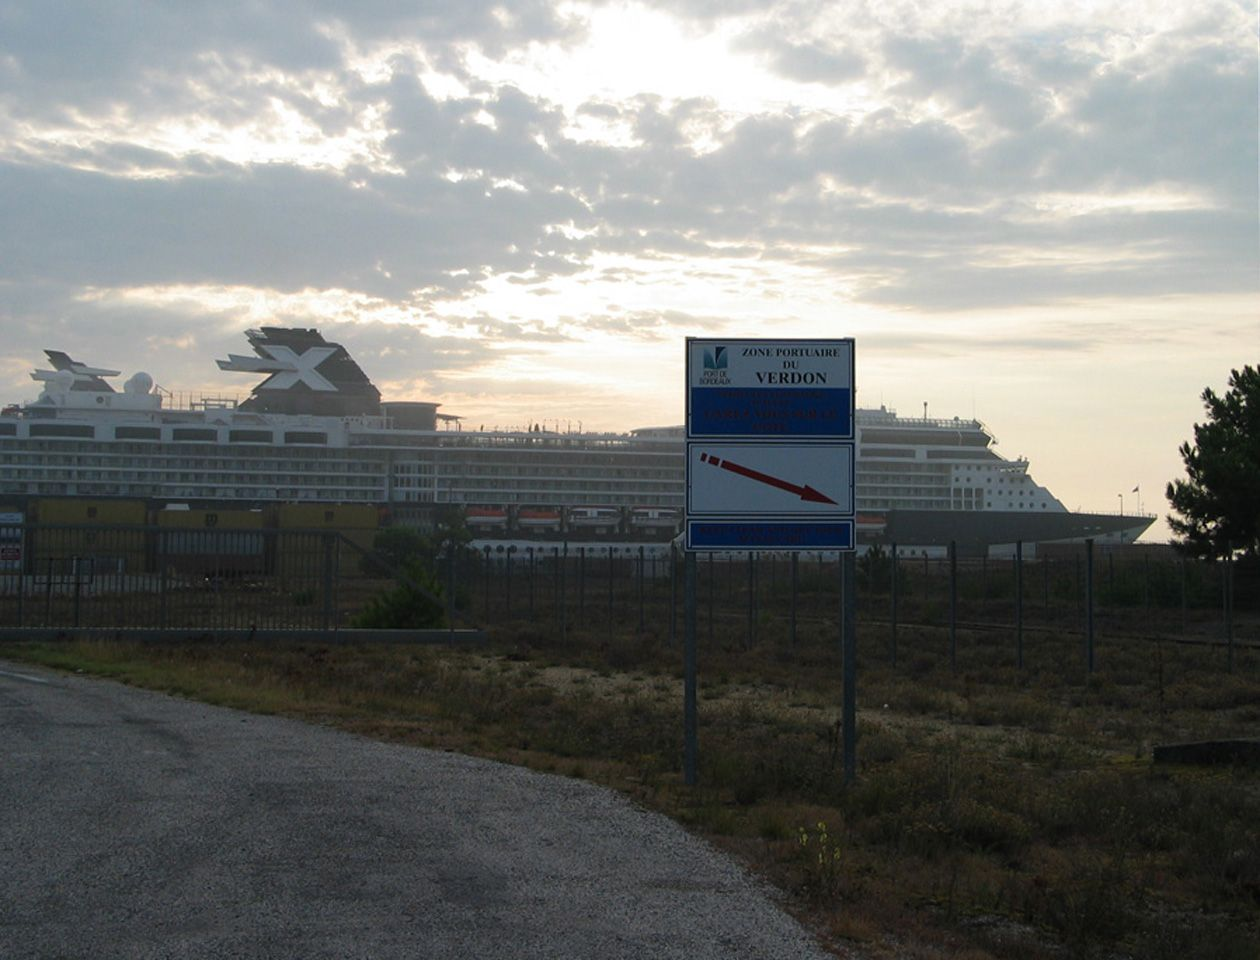 Celebrity Constellation liner docks in Le Verdon